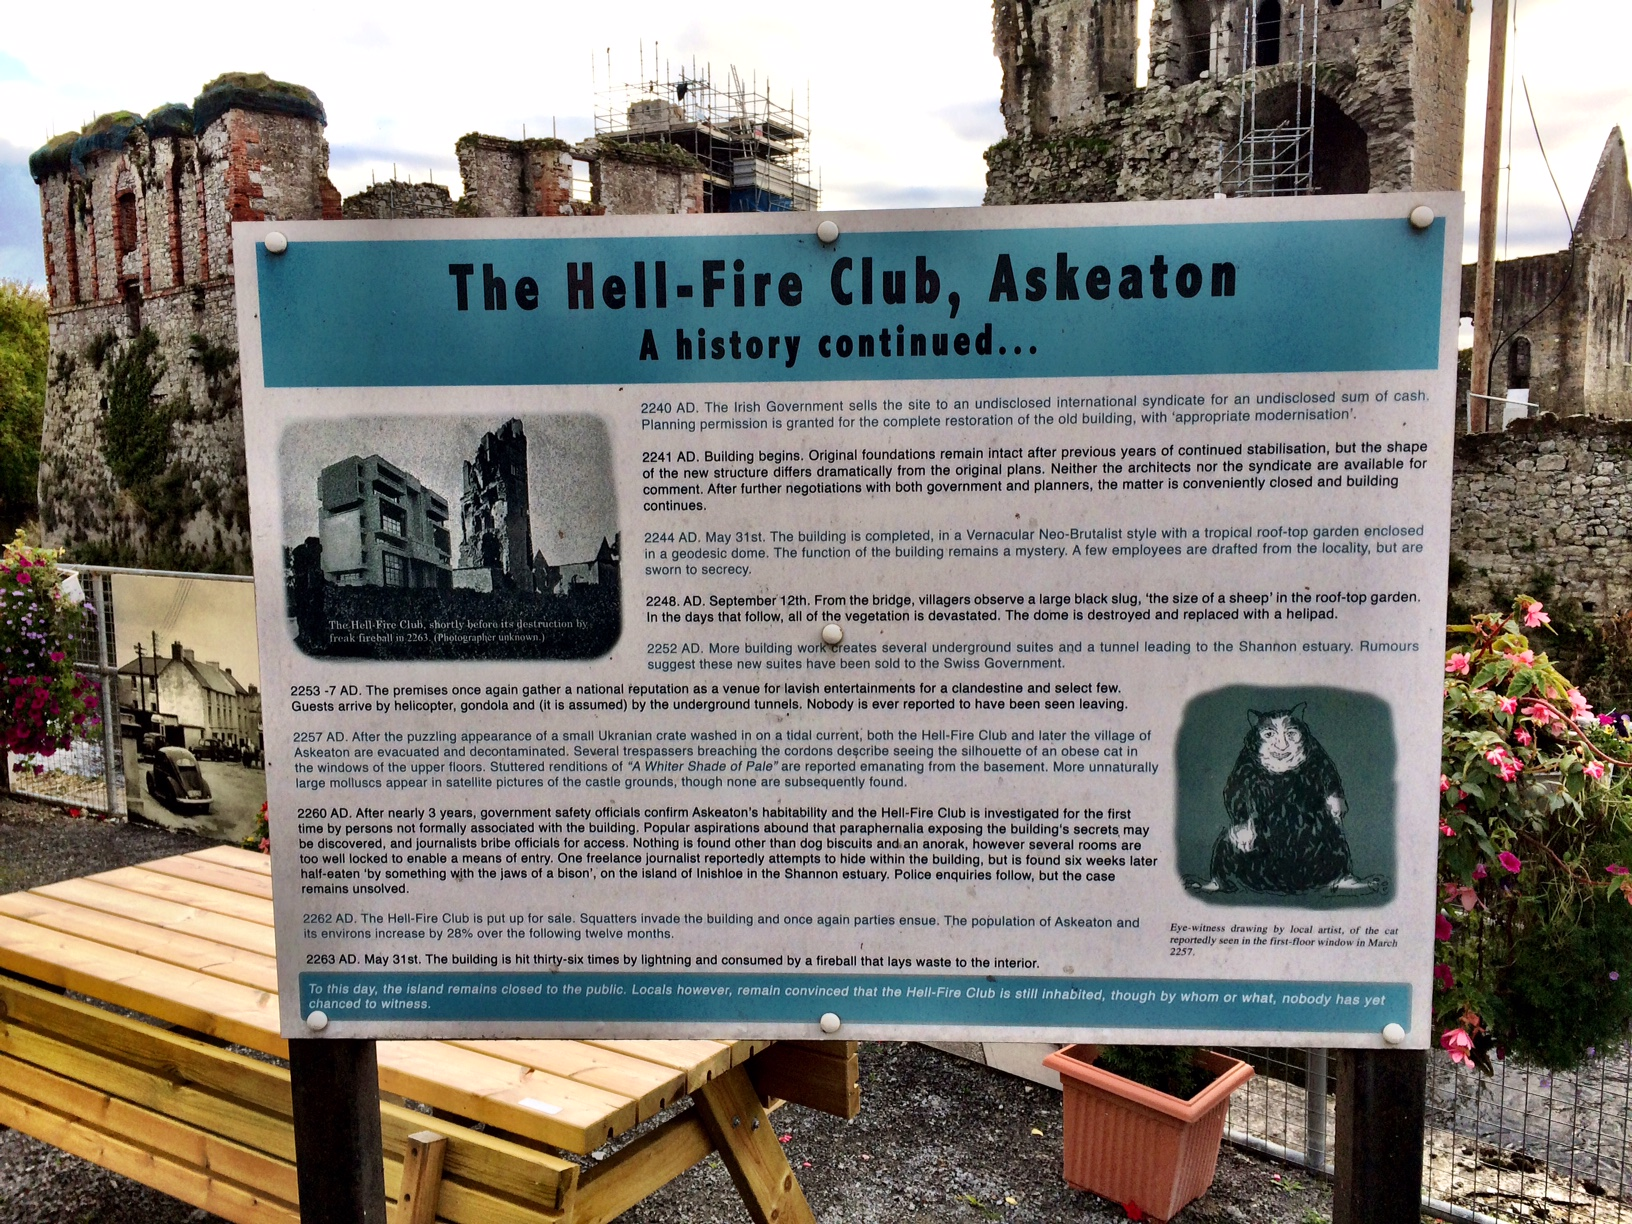 Askeaton, The Hell-Fire Club and Late Night Shenanigans